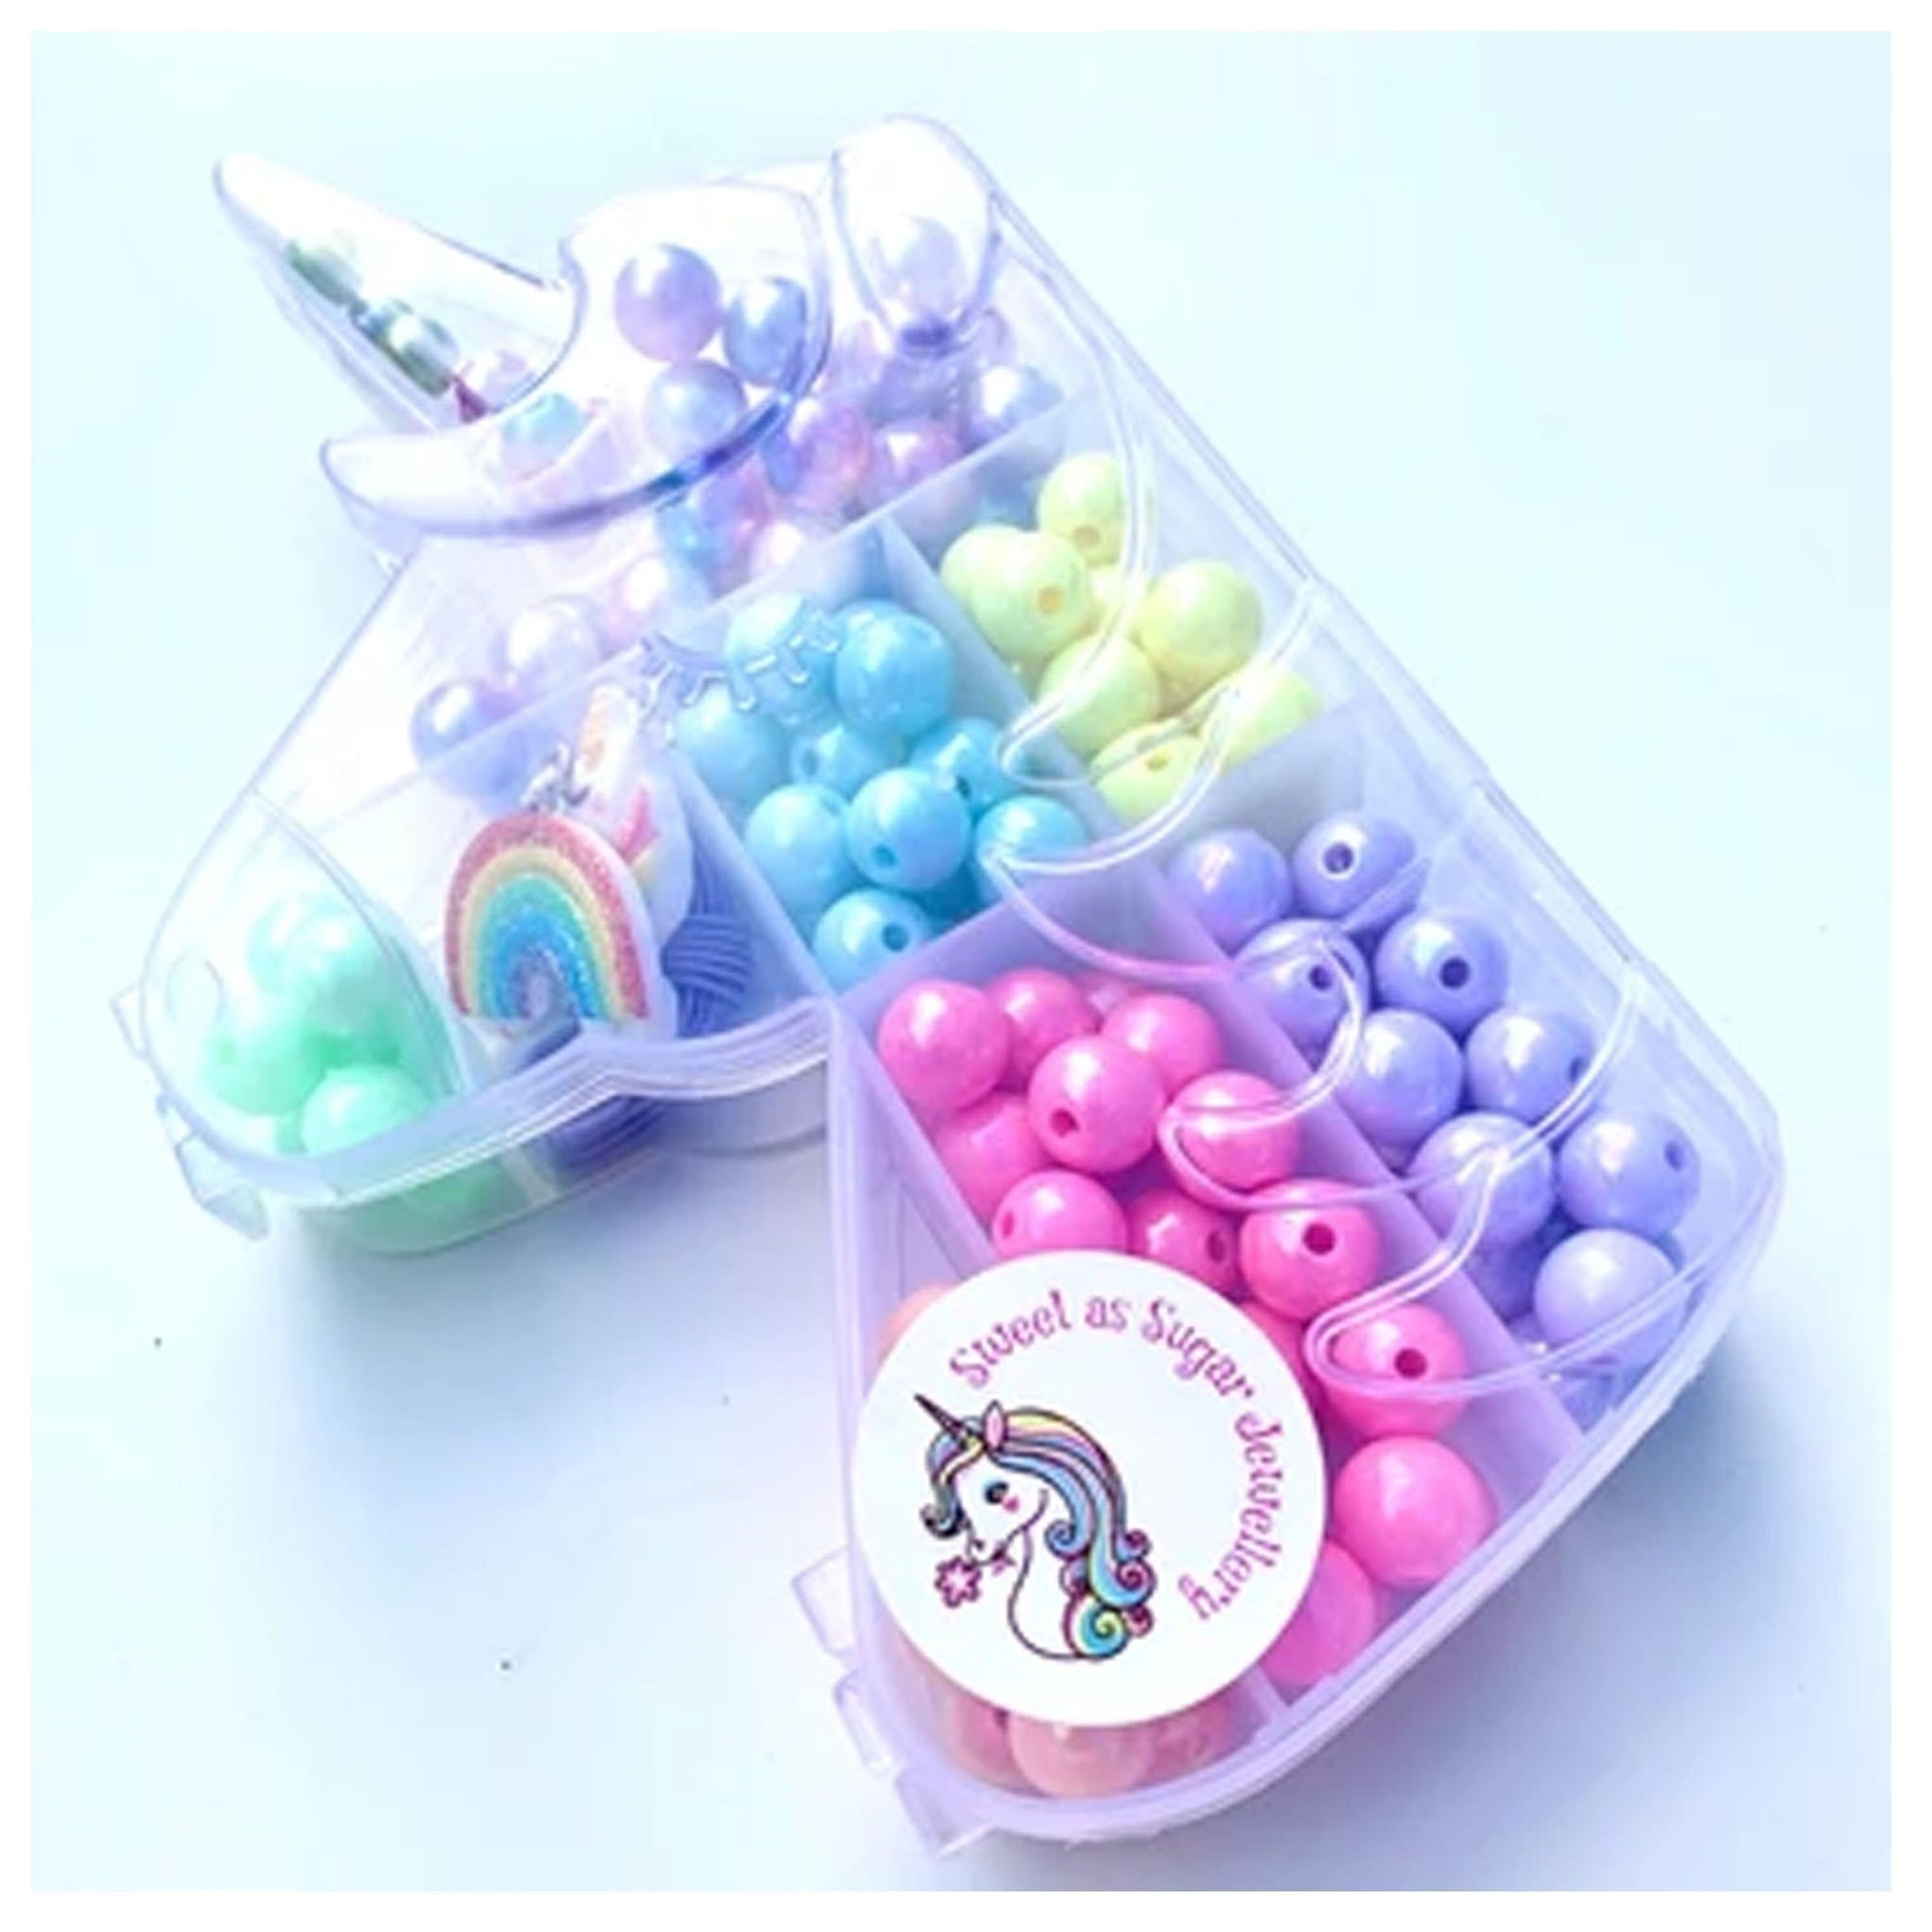 Sweet as Sugar Jellewery Unicorn DIY Bead Kit - Pastel